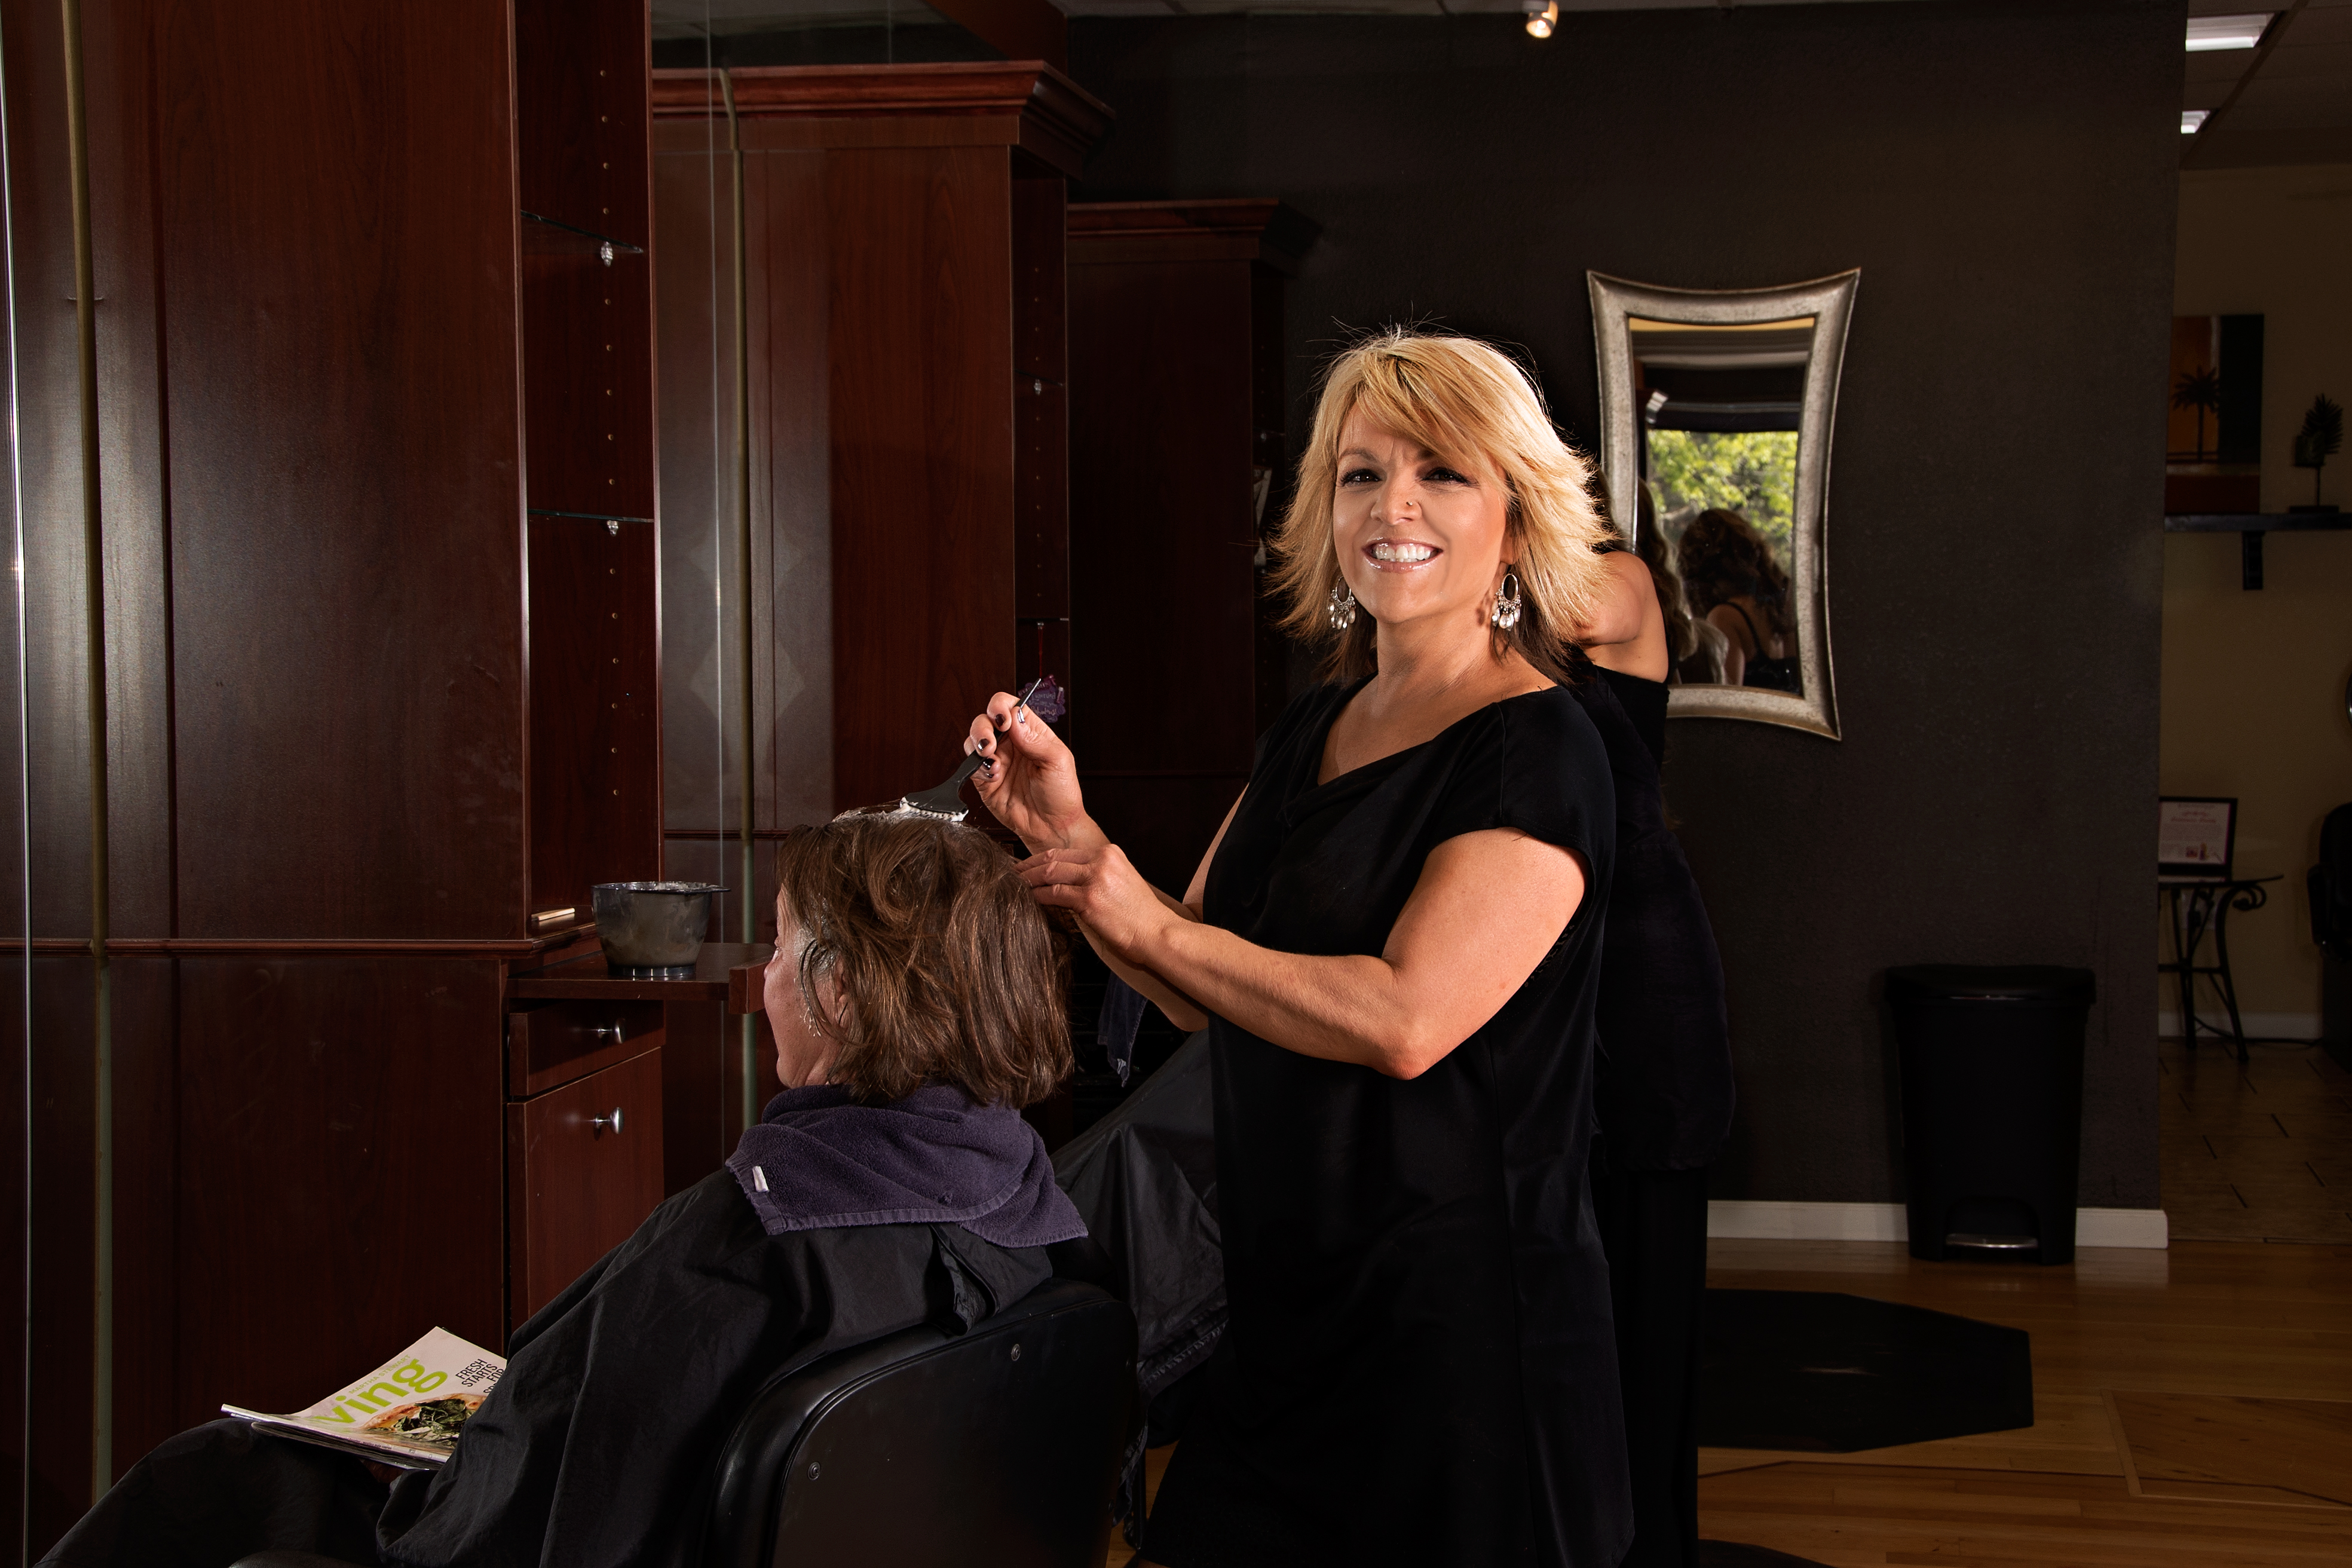 Dawn Young - Hair Stylist at Salon Nevaeh in Littleton, CO